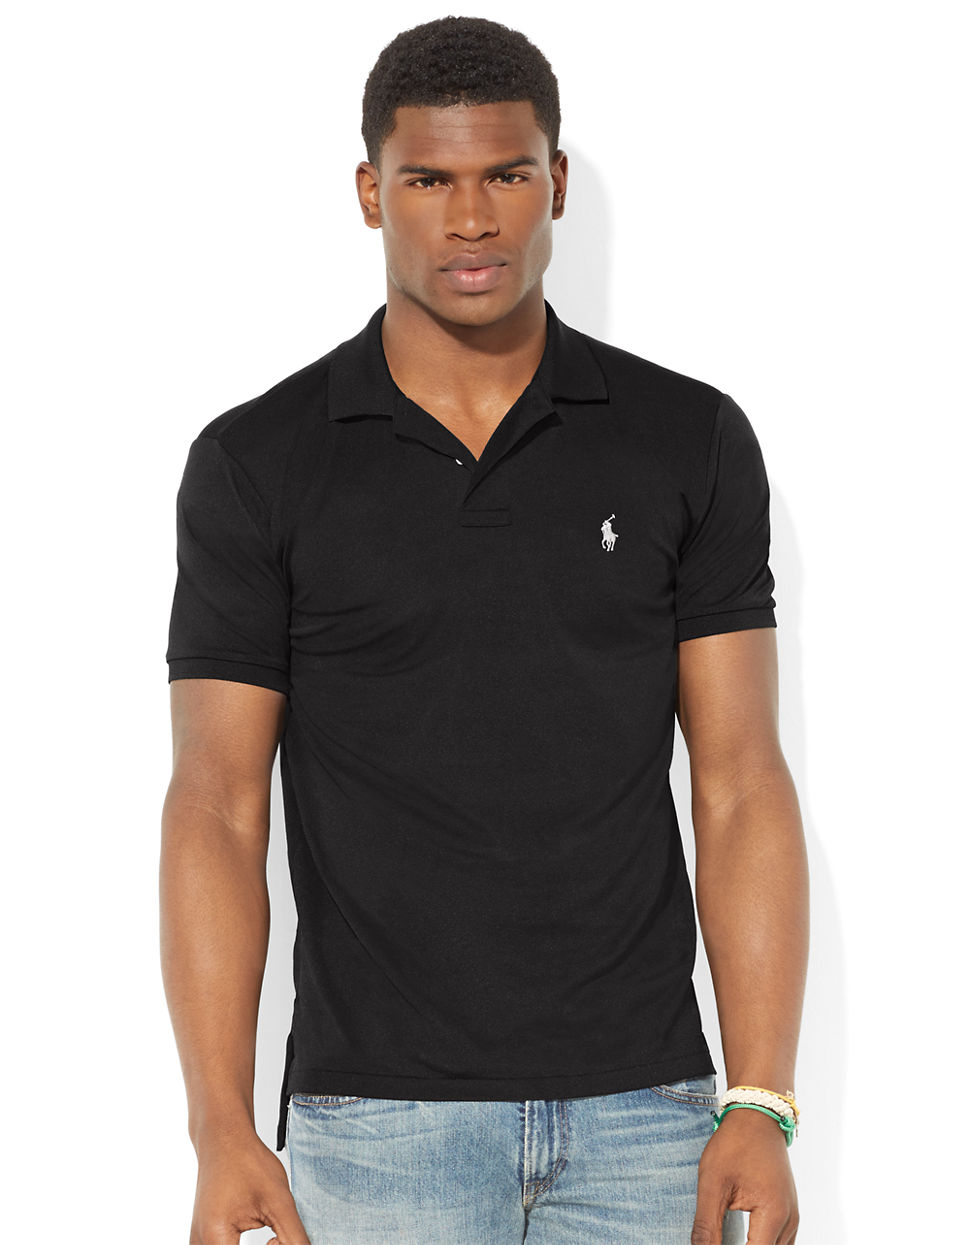 Polo ralph lauren performance mesh polo shirt in black for Man in polo shirt